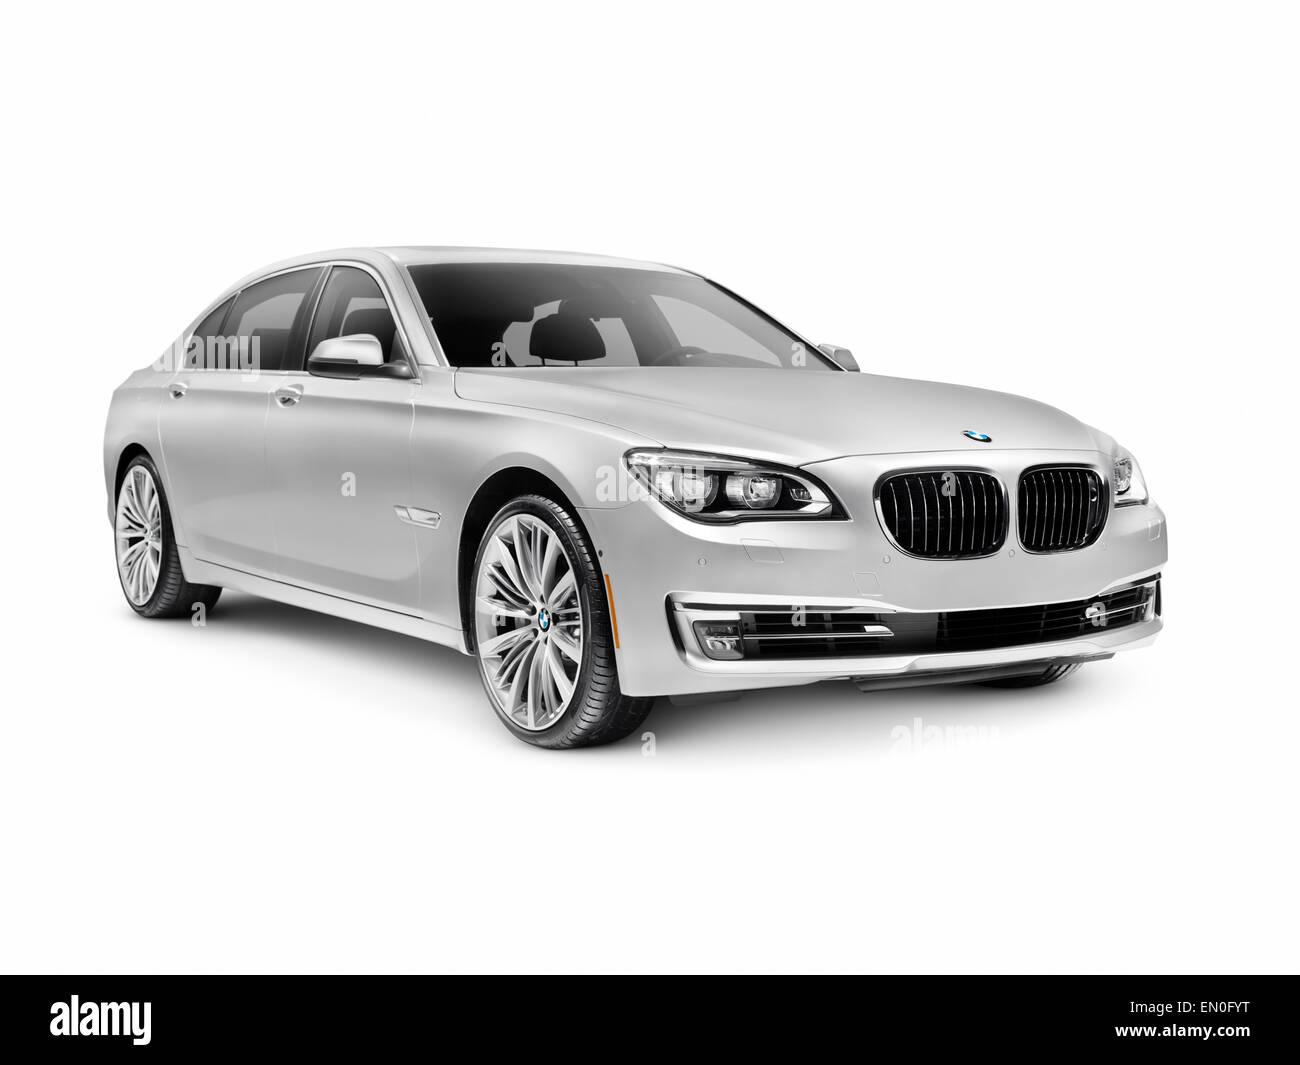 Silver 2015 BMW 7 Series 750Li Individual Luxury Car Isolated On White Background With Clipping Path